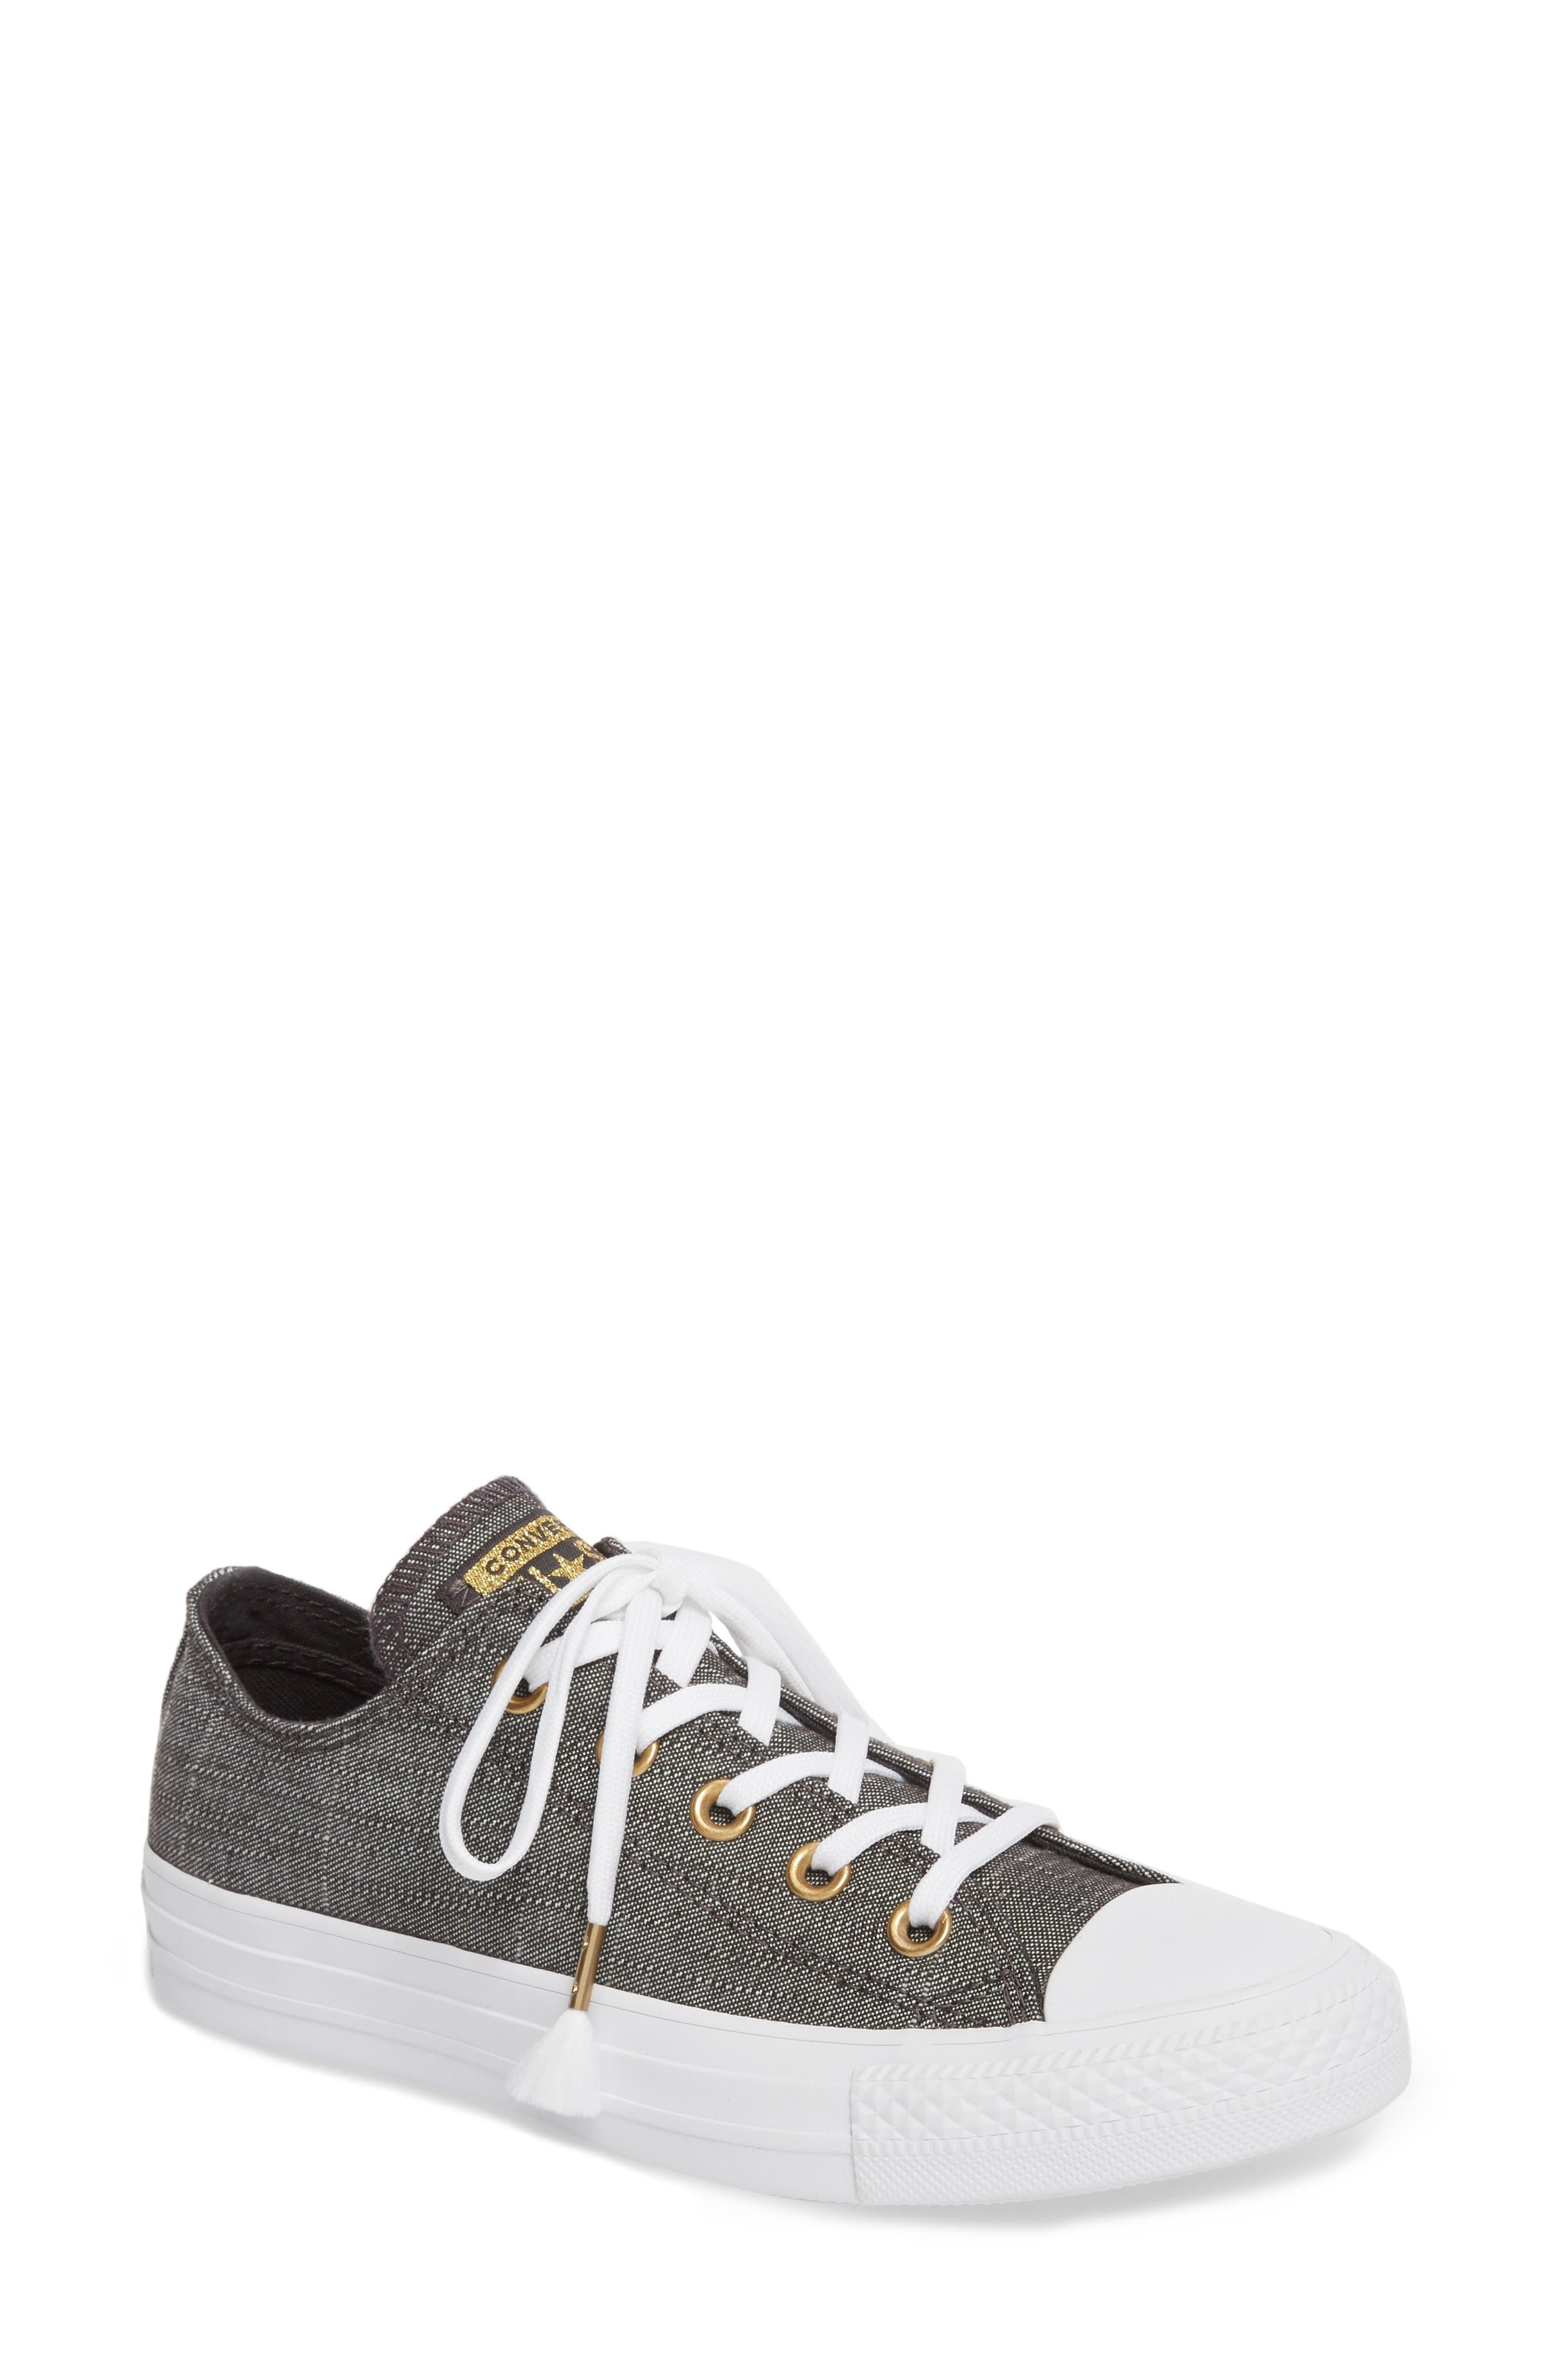 Chuck Taylor<sup>®</sup> All Star<sup>®</sup> Washed Linen Low Top Sneaker,                         Main,                         color, 006